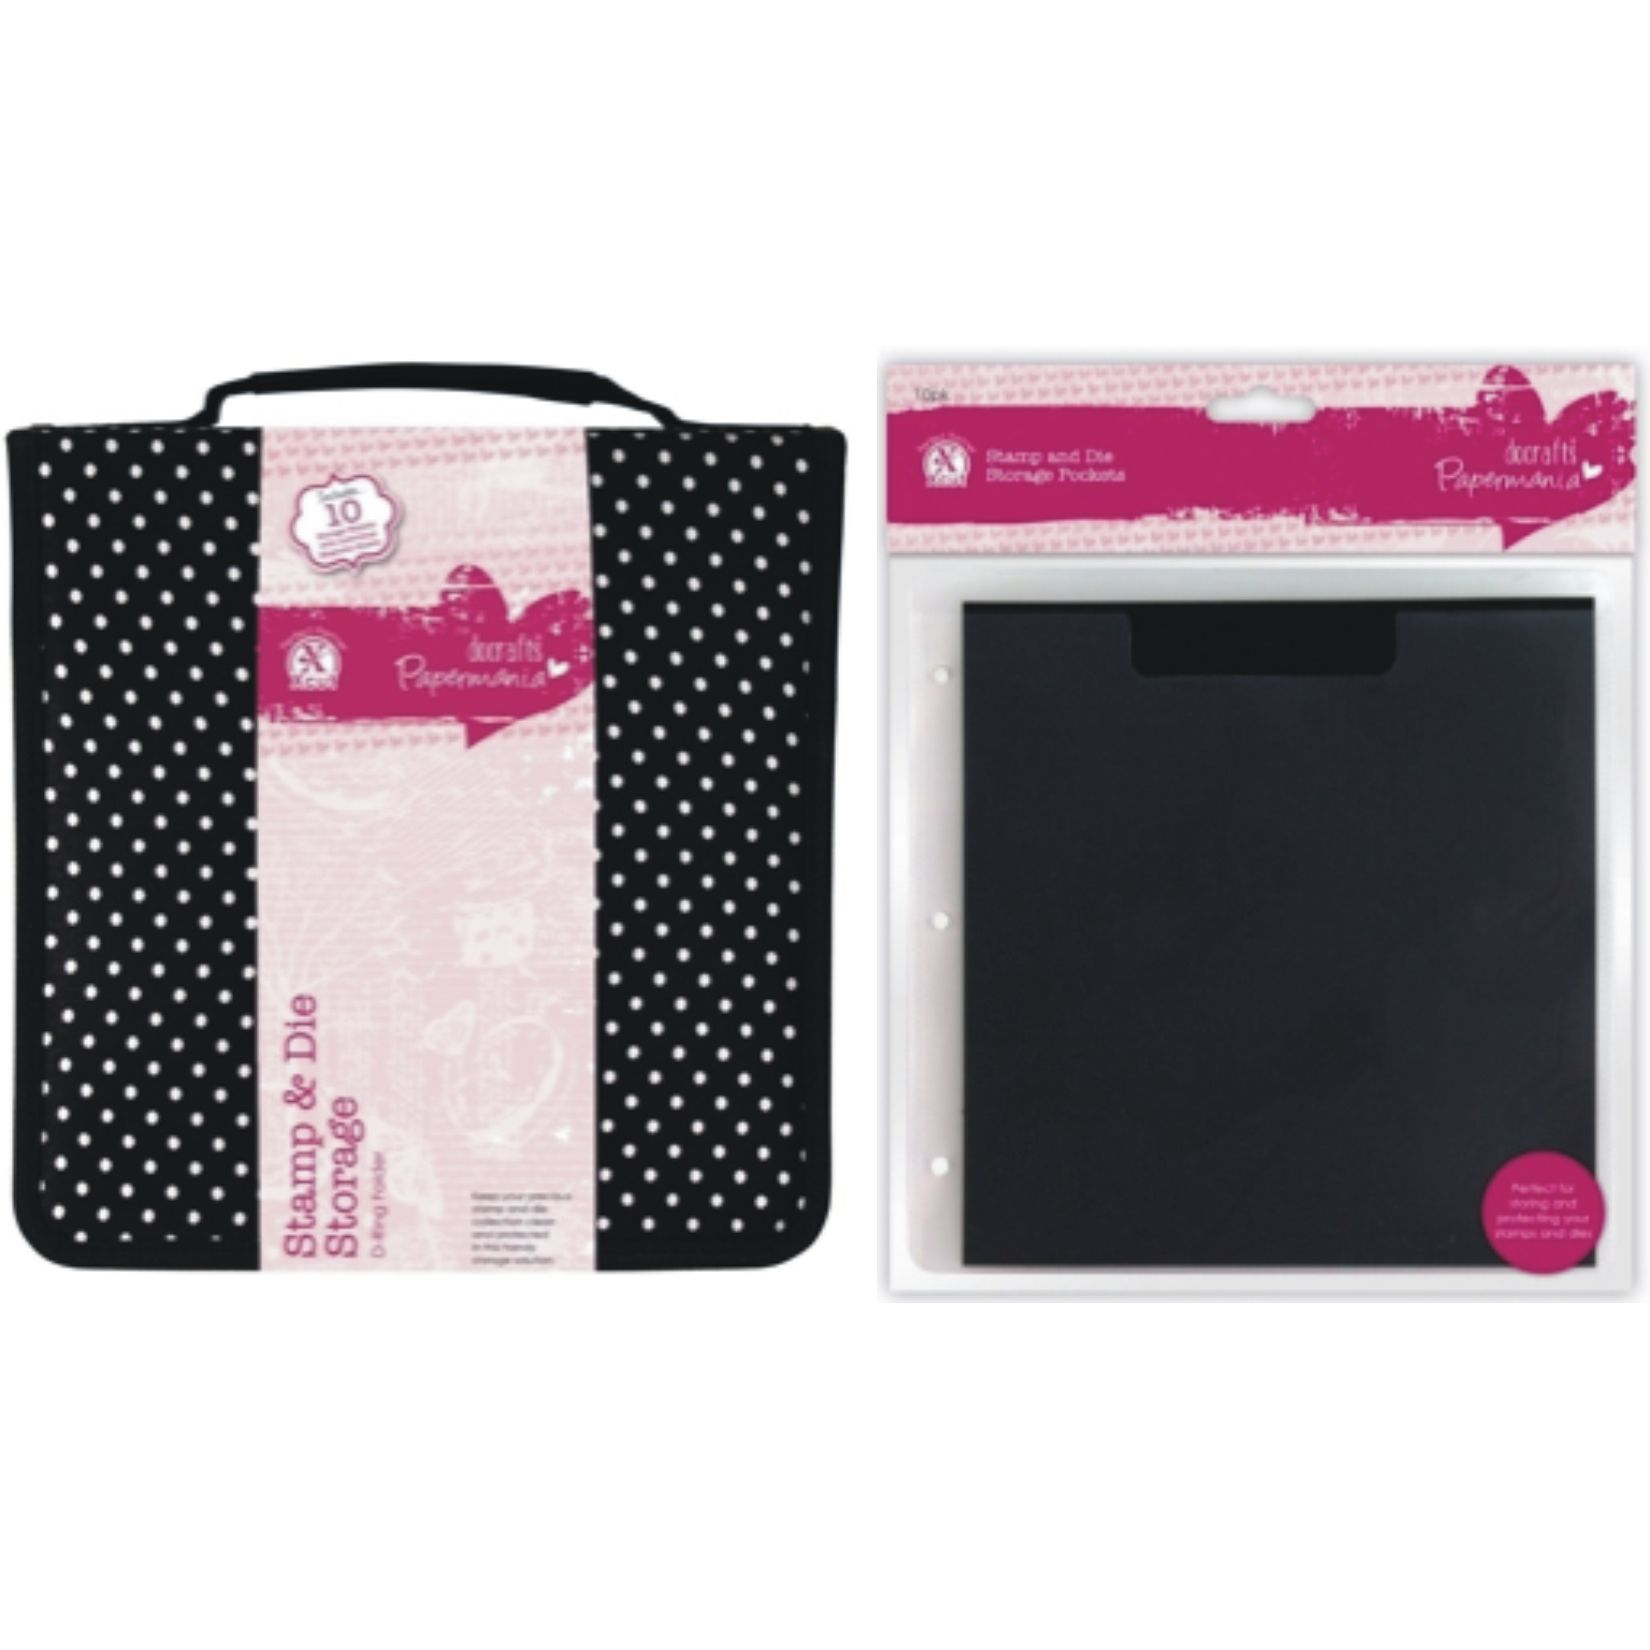 Docrafts Papermania Stamp And Die Storage D Ring Folder